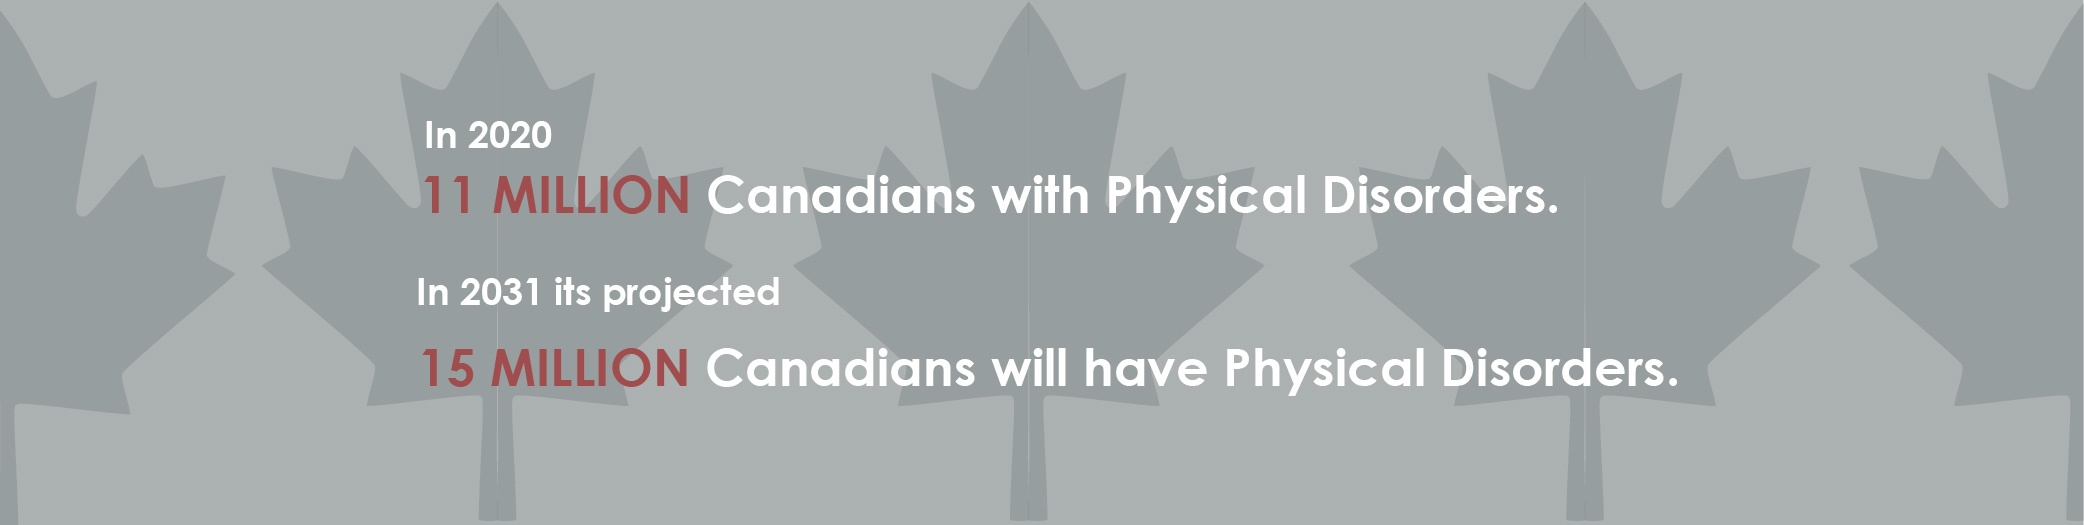 Statistic on Canadians with Physical Disorders